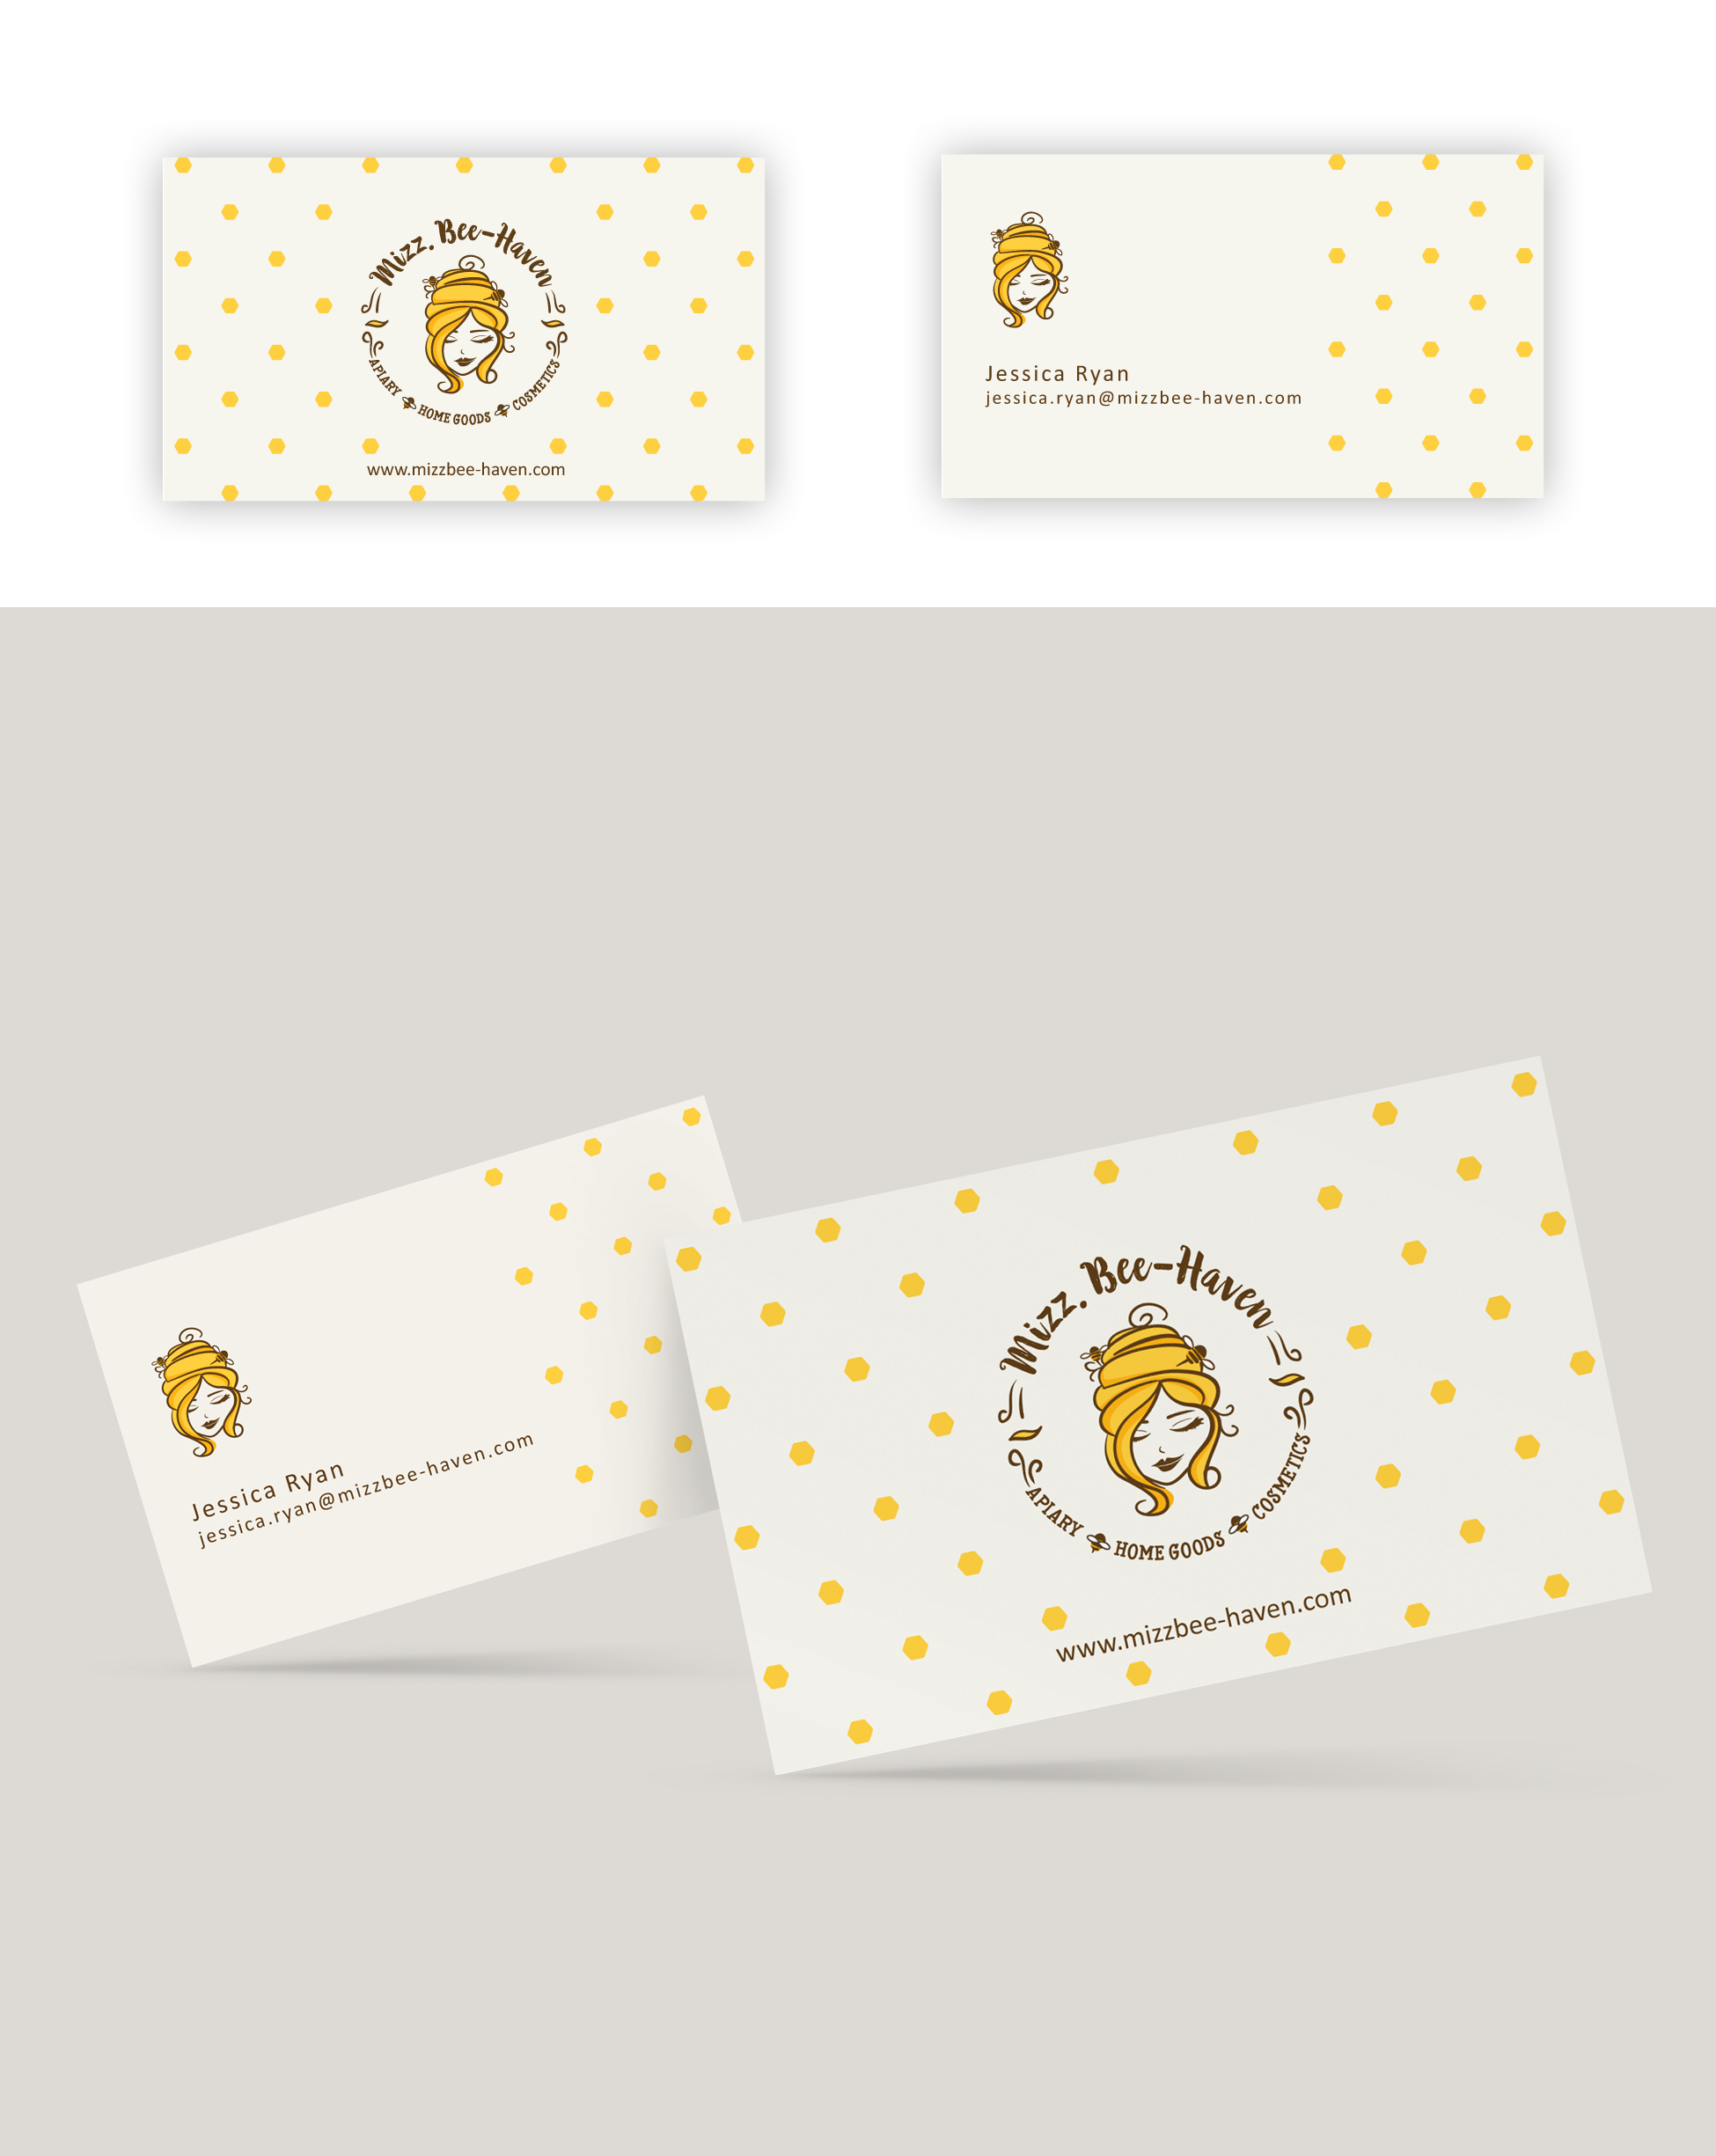 Design a logo for handmade honey-bee products